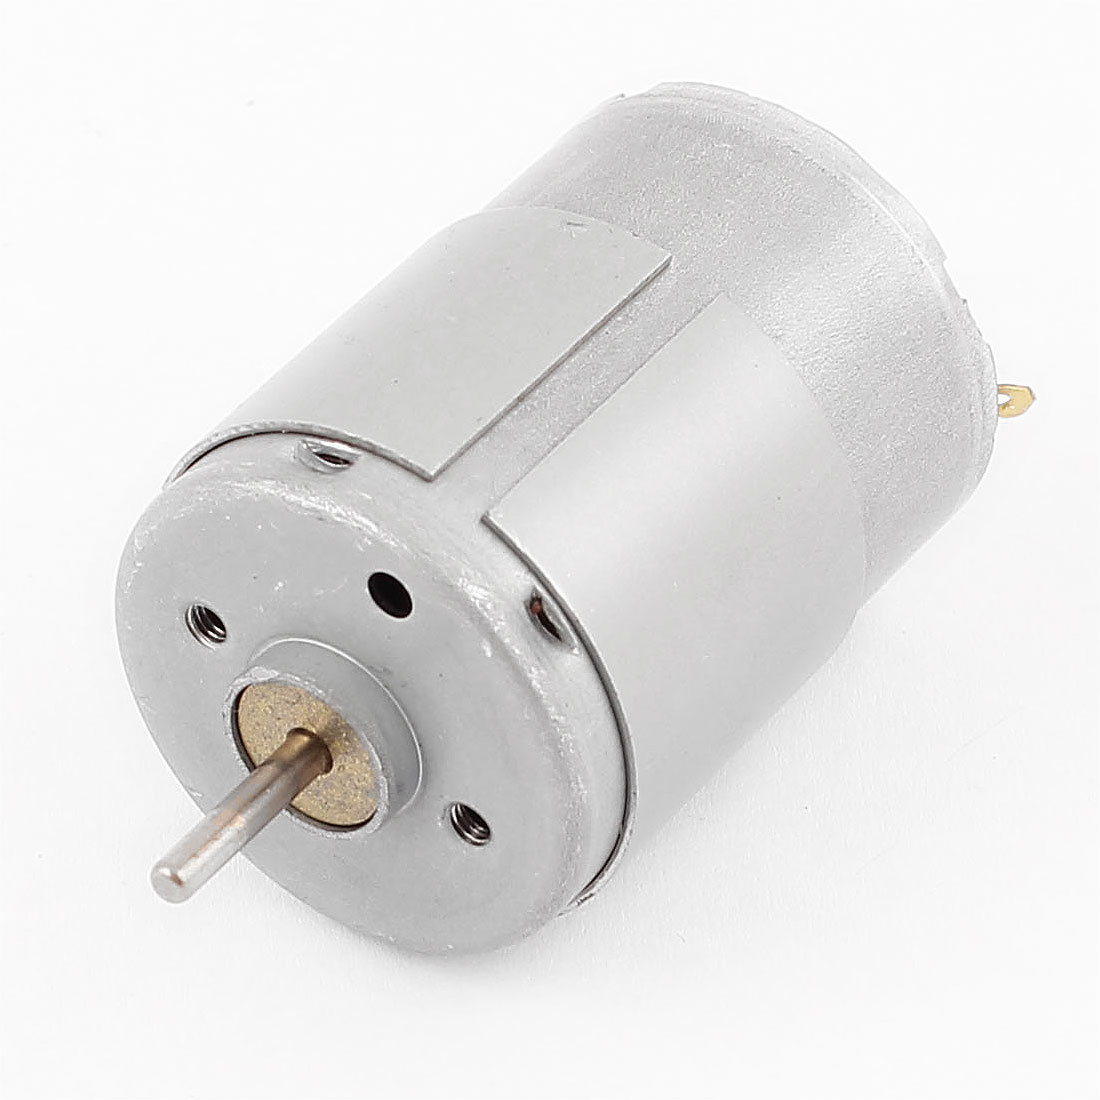 Airplane Model Cylinder Electric Micro Motor 8300RPM DC 3-9V